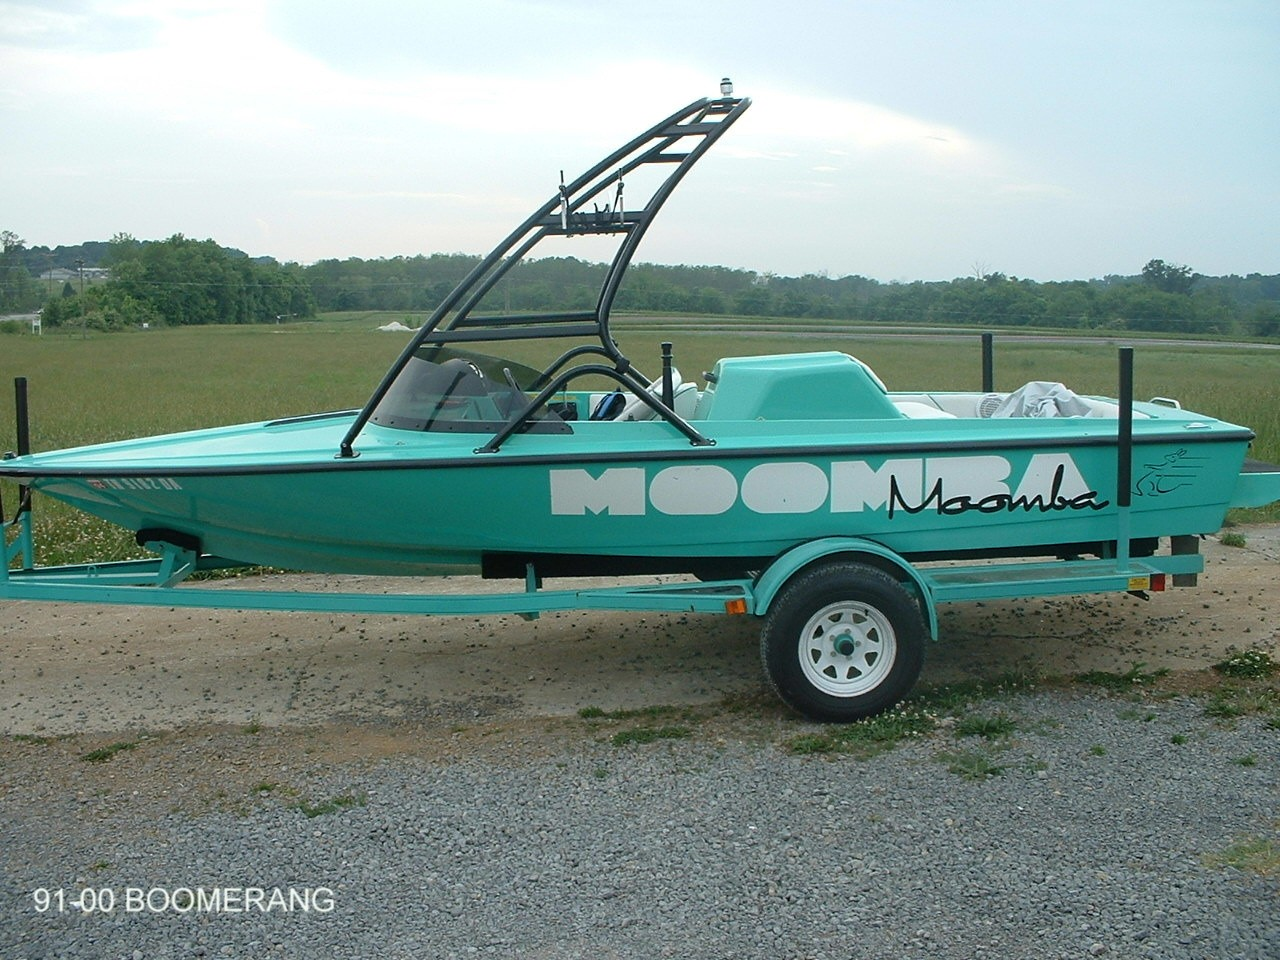 main view of 91 - 00 moomba boomerang with new dimension towers wakeboard tower